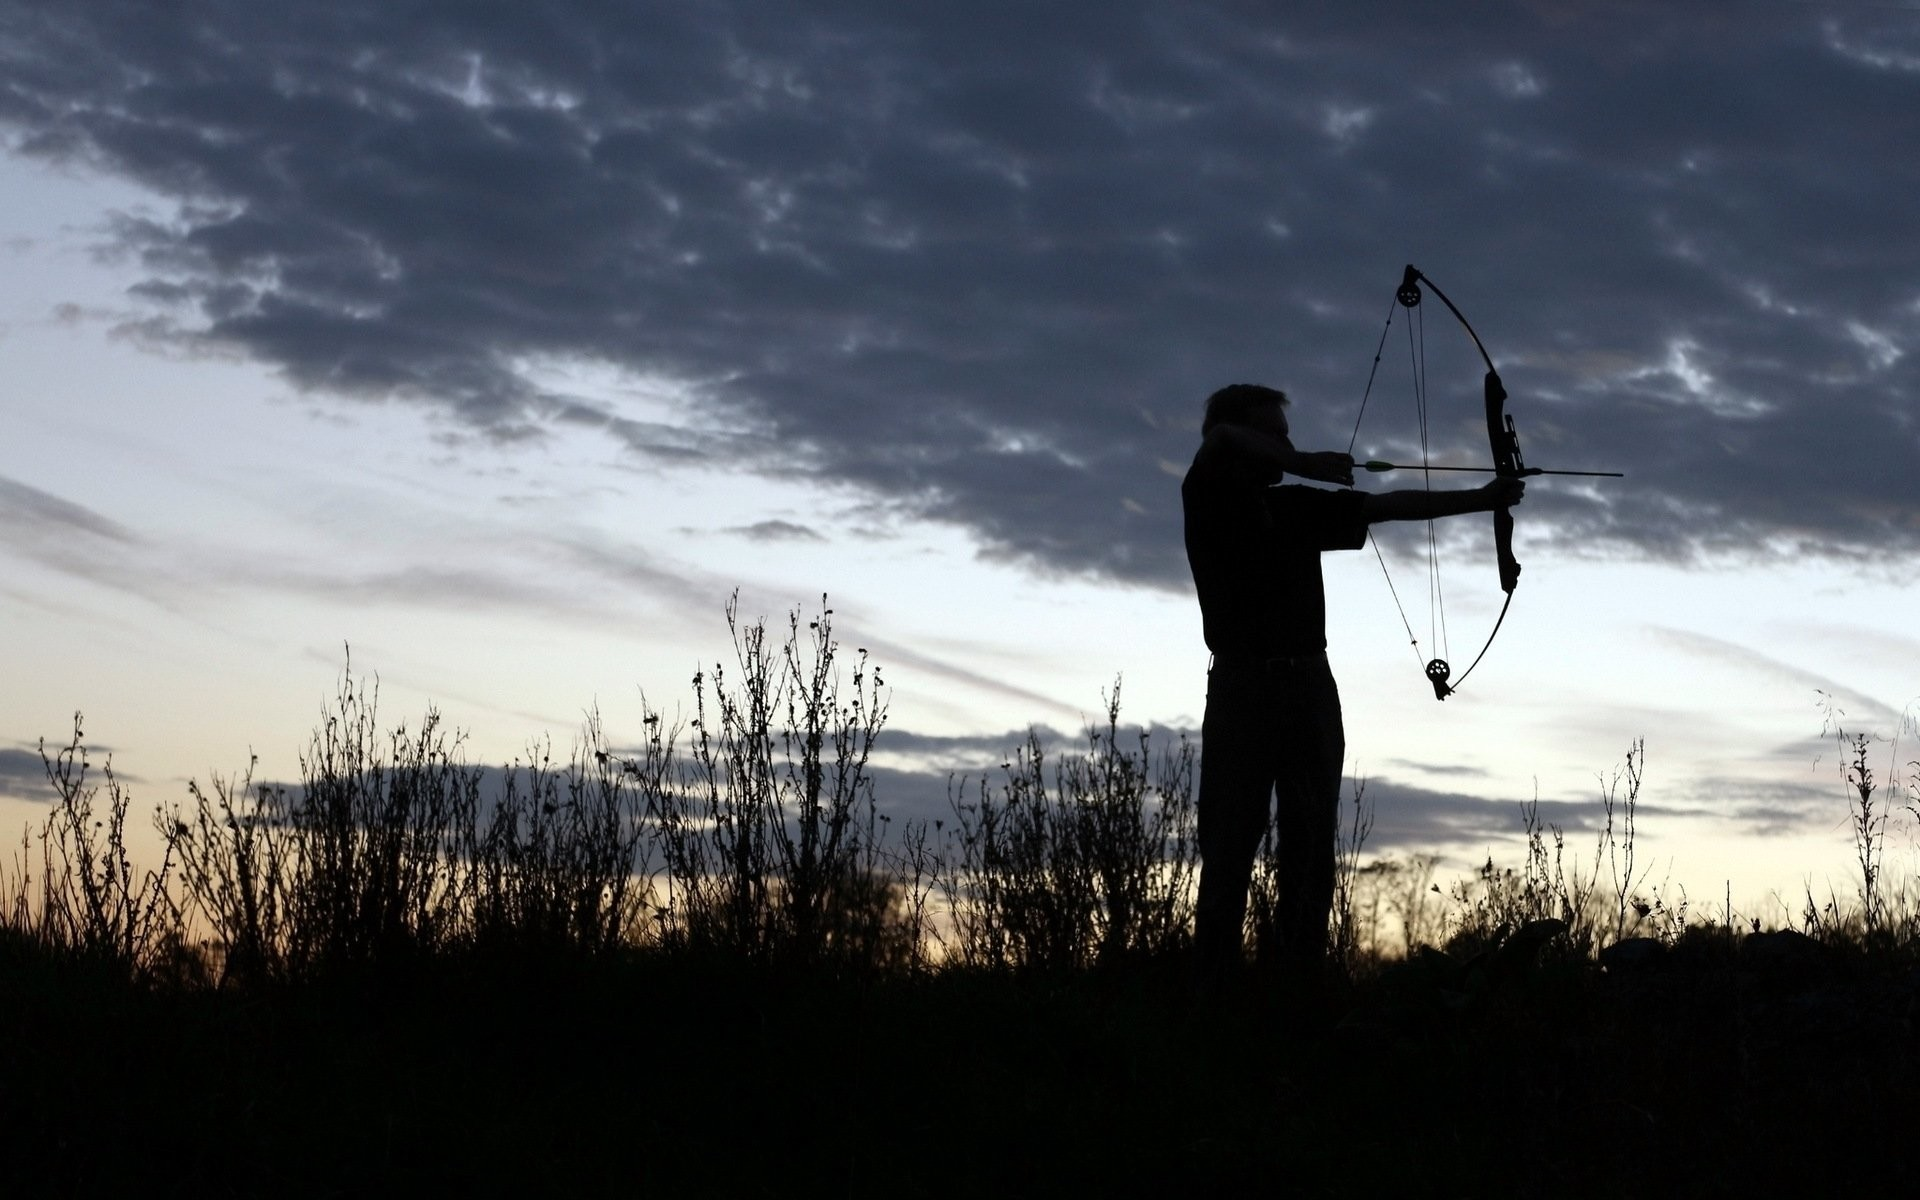 BOW HUNTING archery archer bow arrow hunting weapon wallpaper | |  420227 | WallpaperUP